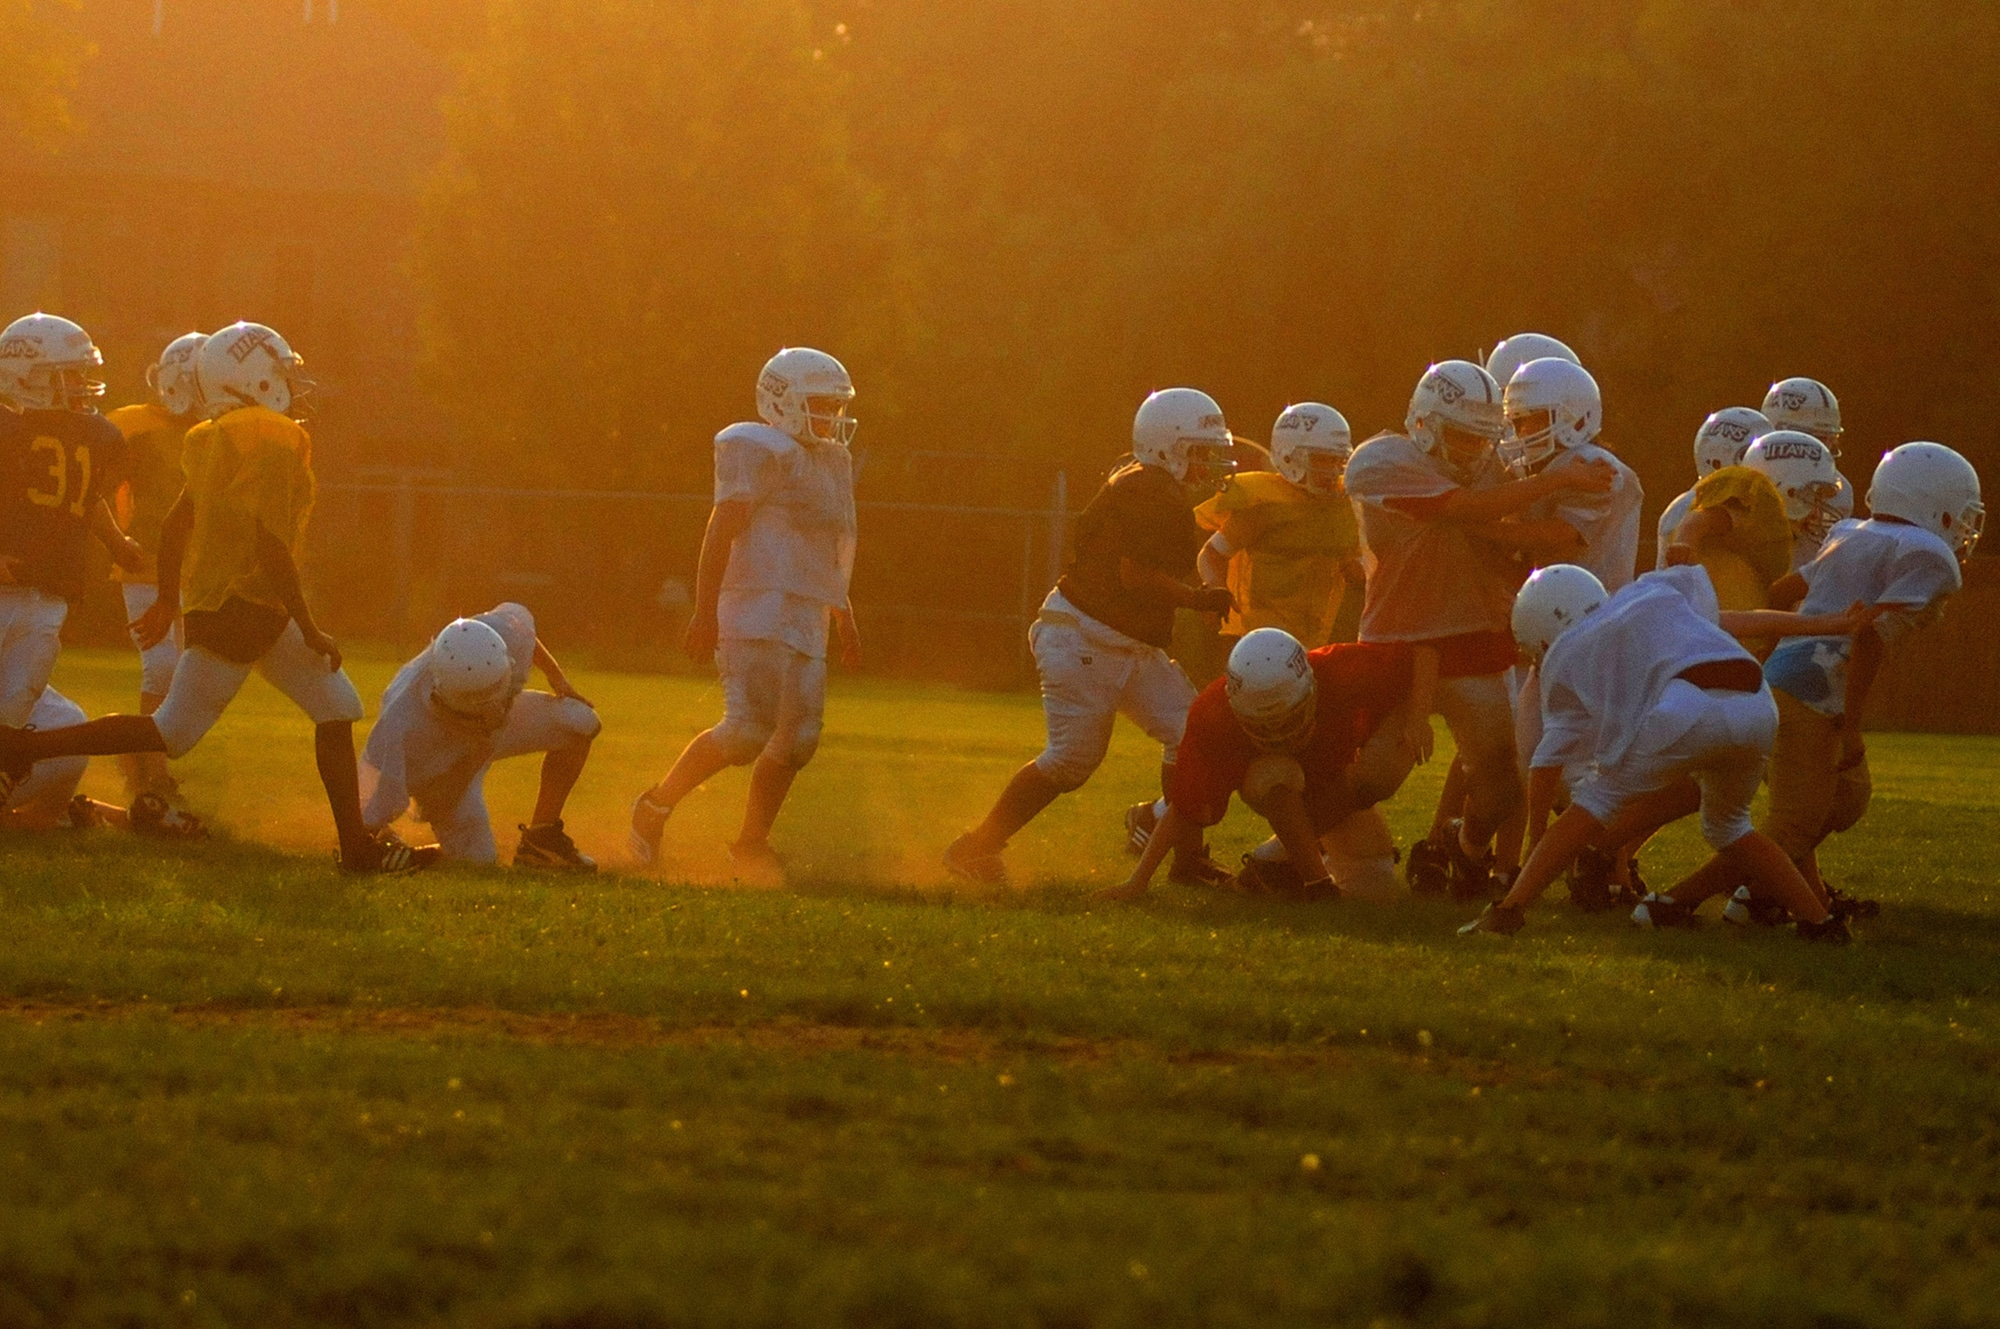 Concussion prevention blog featured image showing a team of American Football playing children wearing protective gear